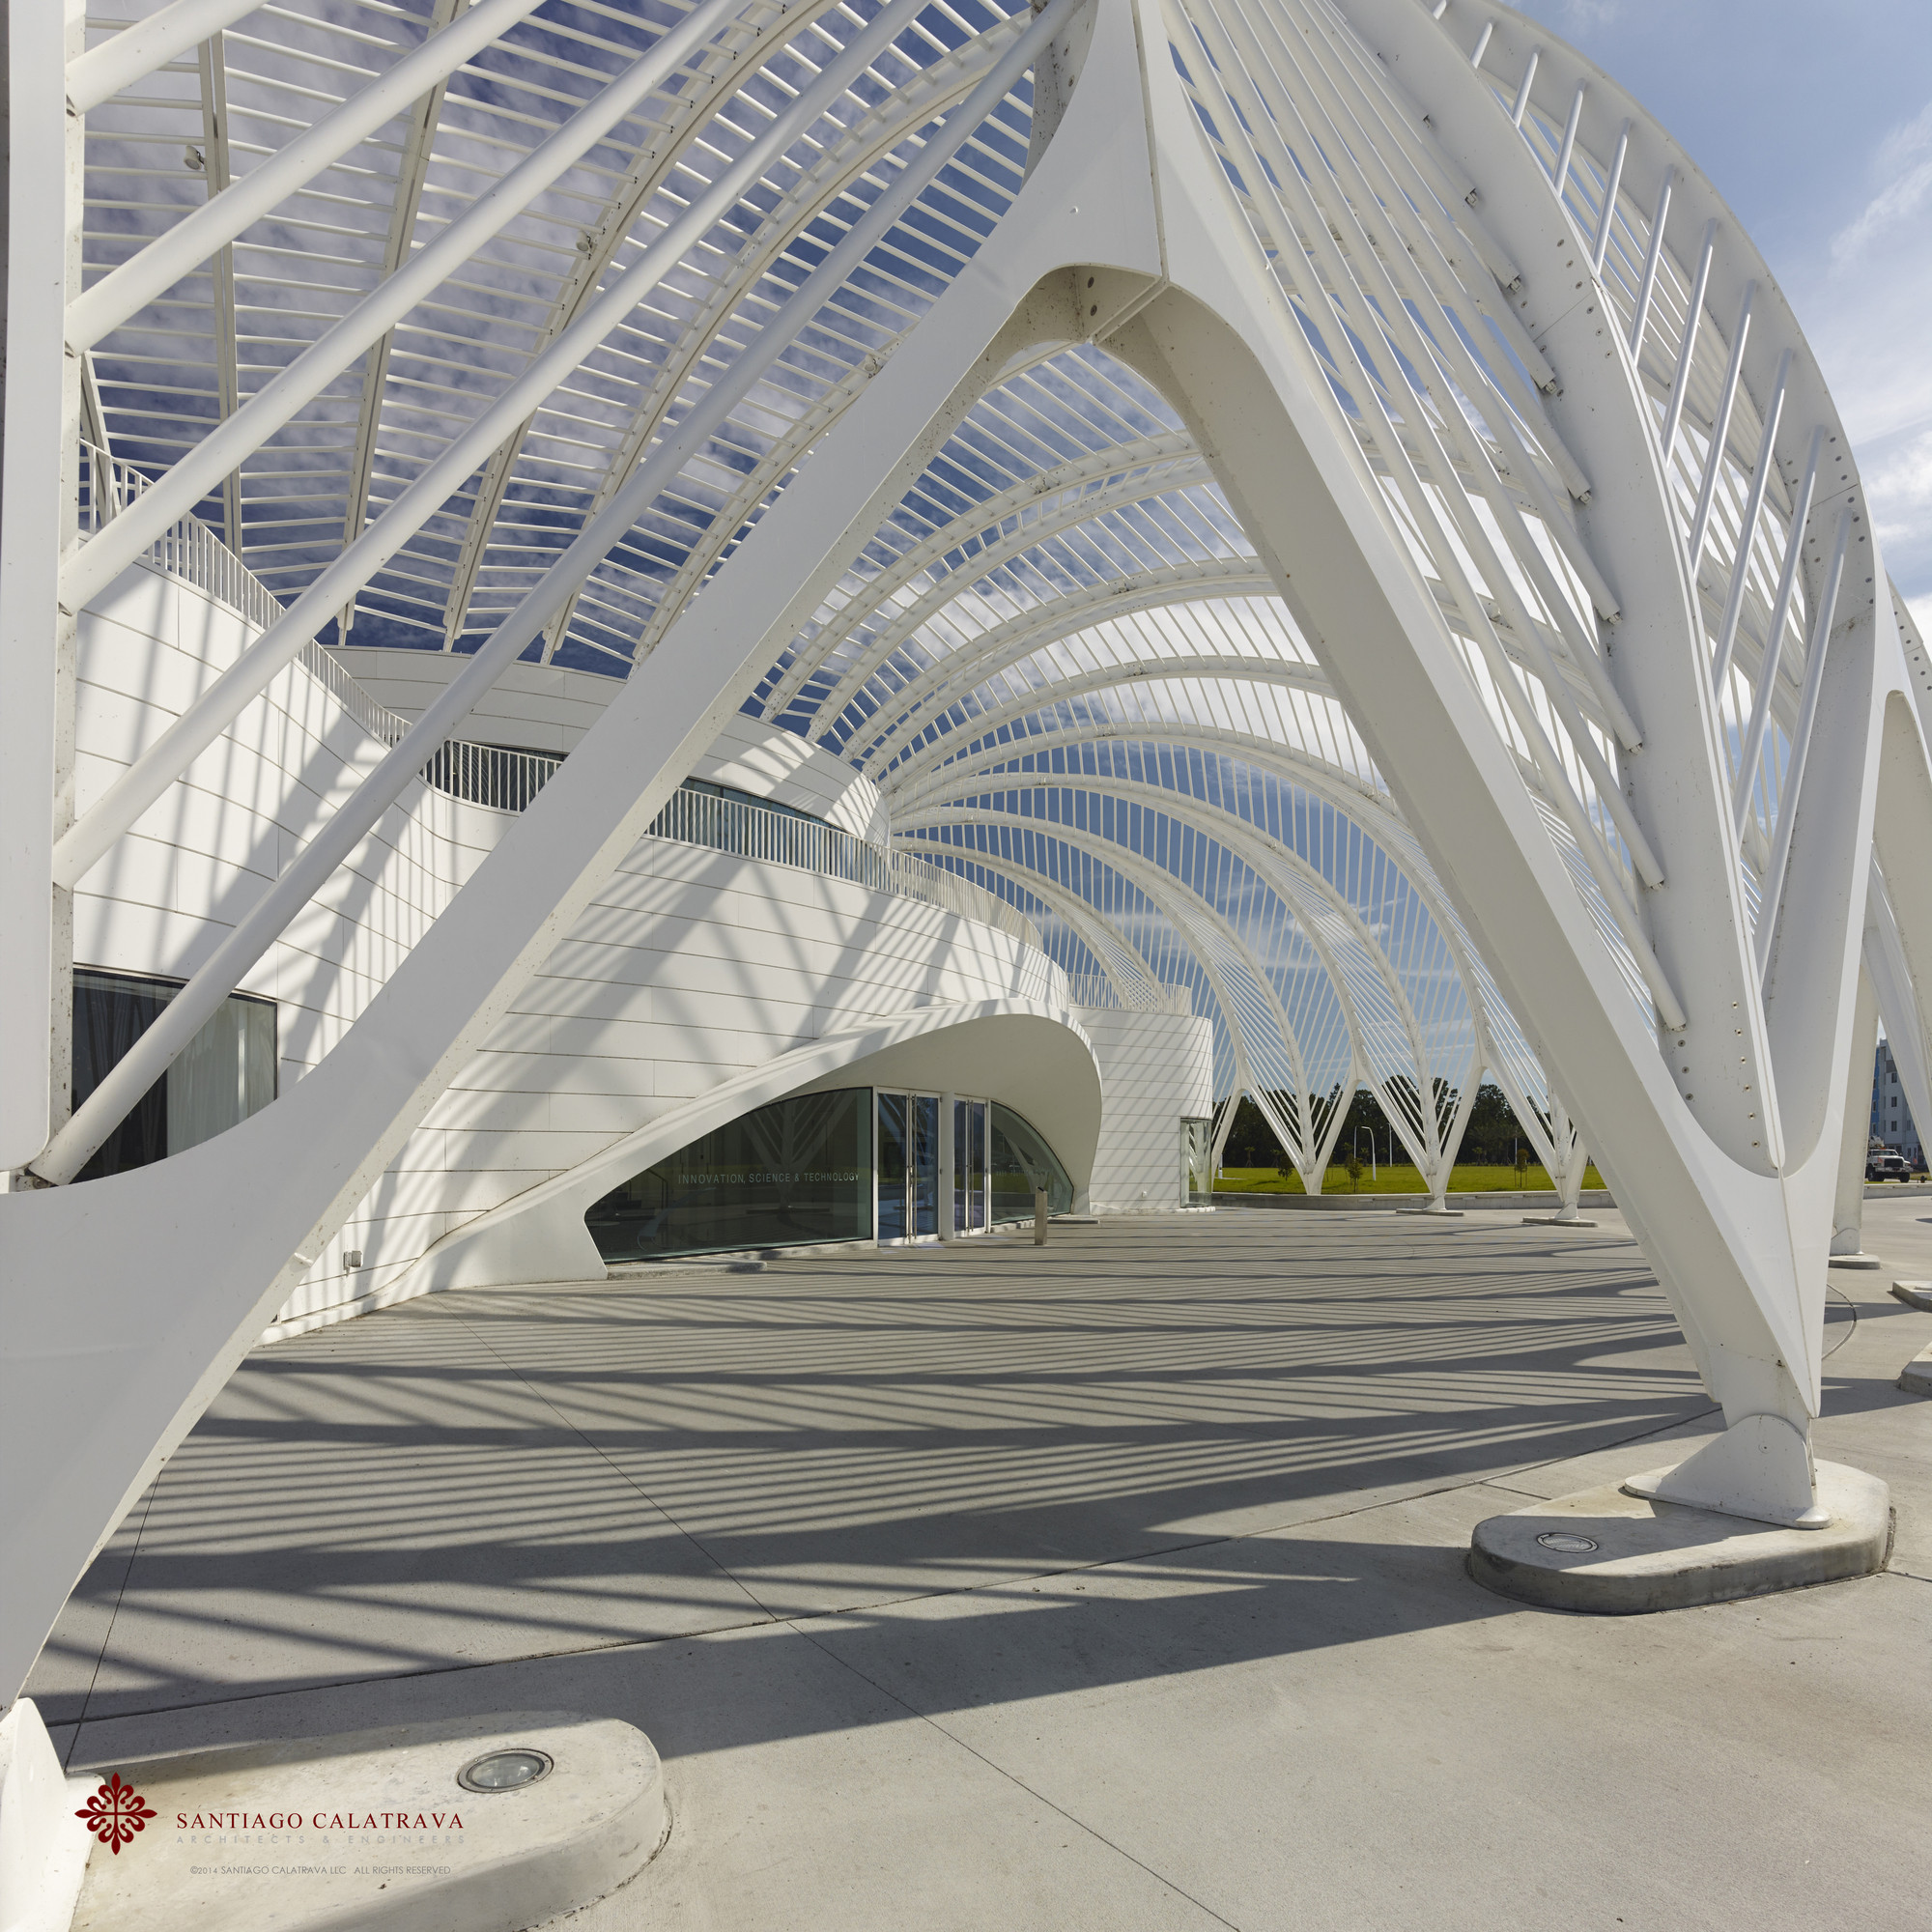 In Defense of Santiago Calatrava, Florida Polytechnic Sciencie, Innovation and Technology Campus. Image © Alan Karchmer for Santiago Calatrava